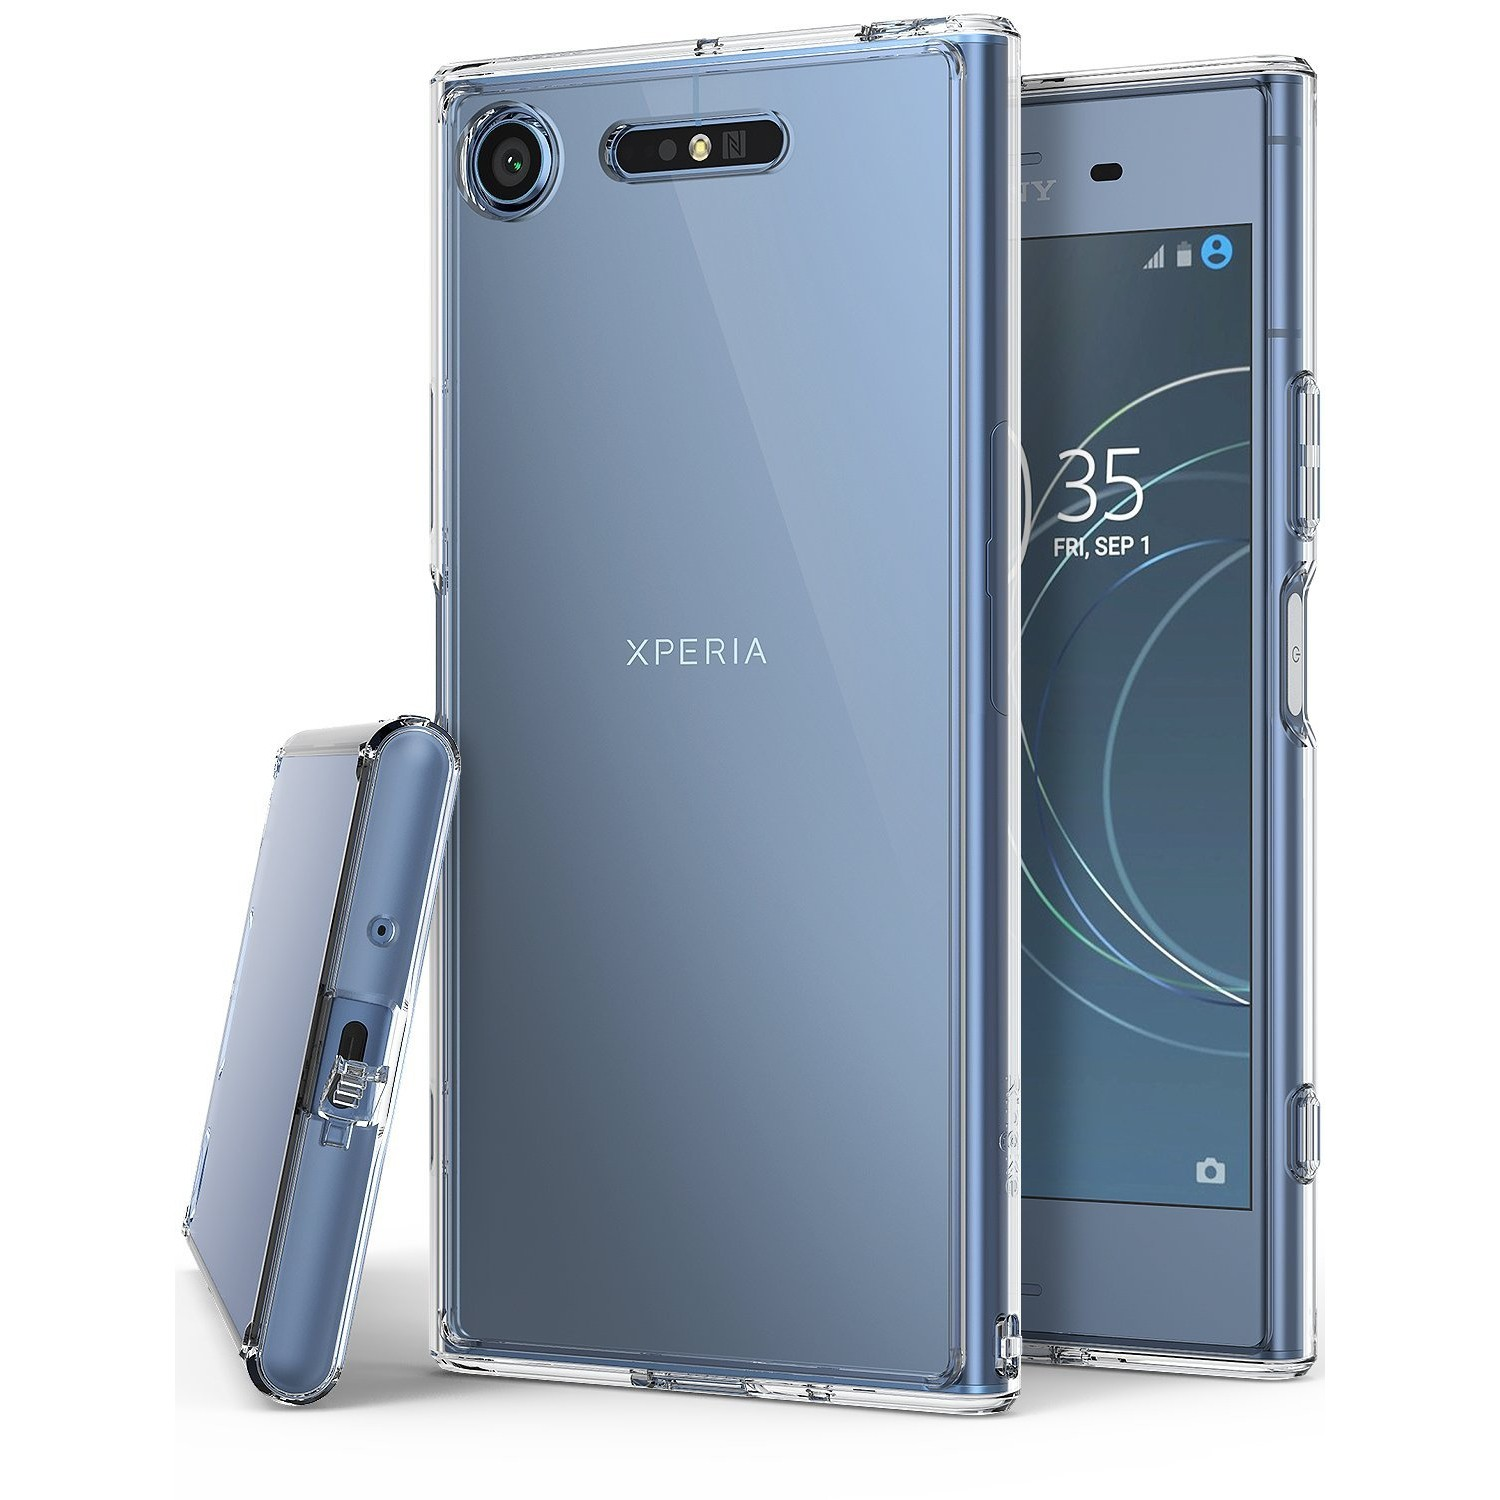 official photos 10341 677e3 Sony Xperia XZ1 Phone Case Ringke [FUSION] Crystal Clear Minimalist  Transparent PC Back TPU Bumper [Drop Protection] Scratch R